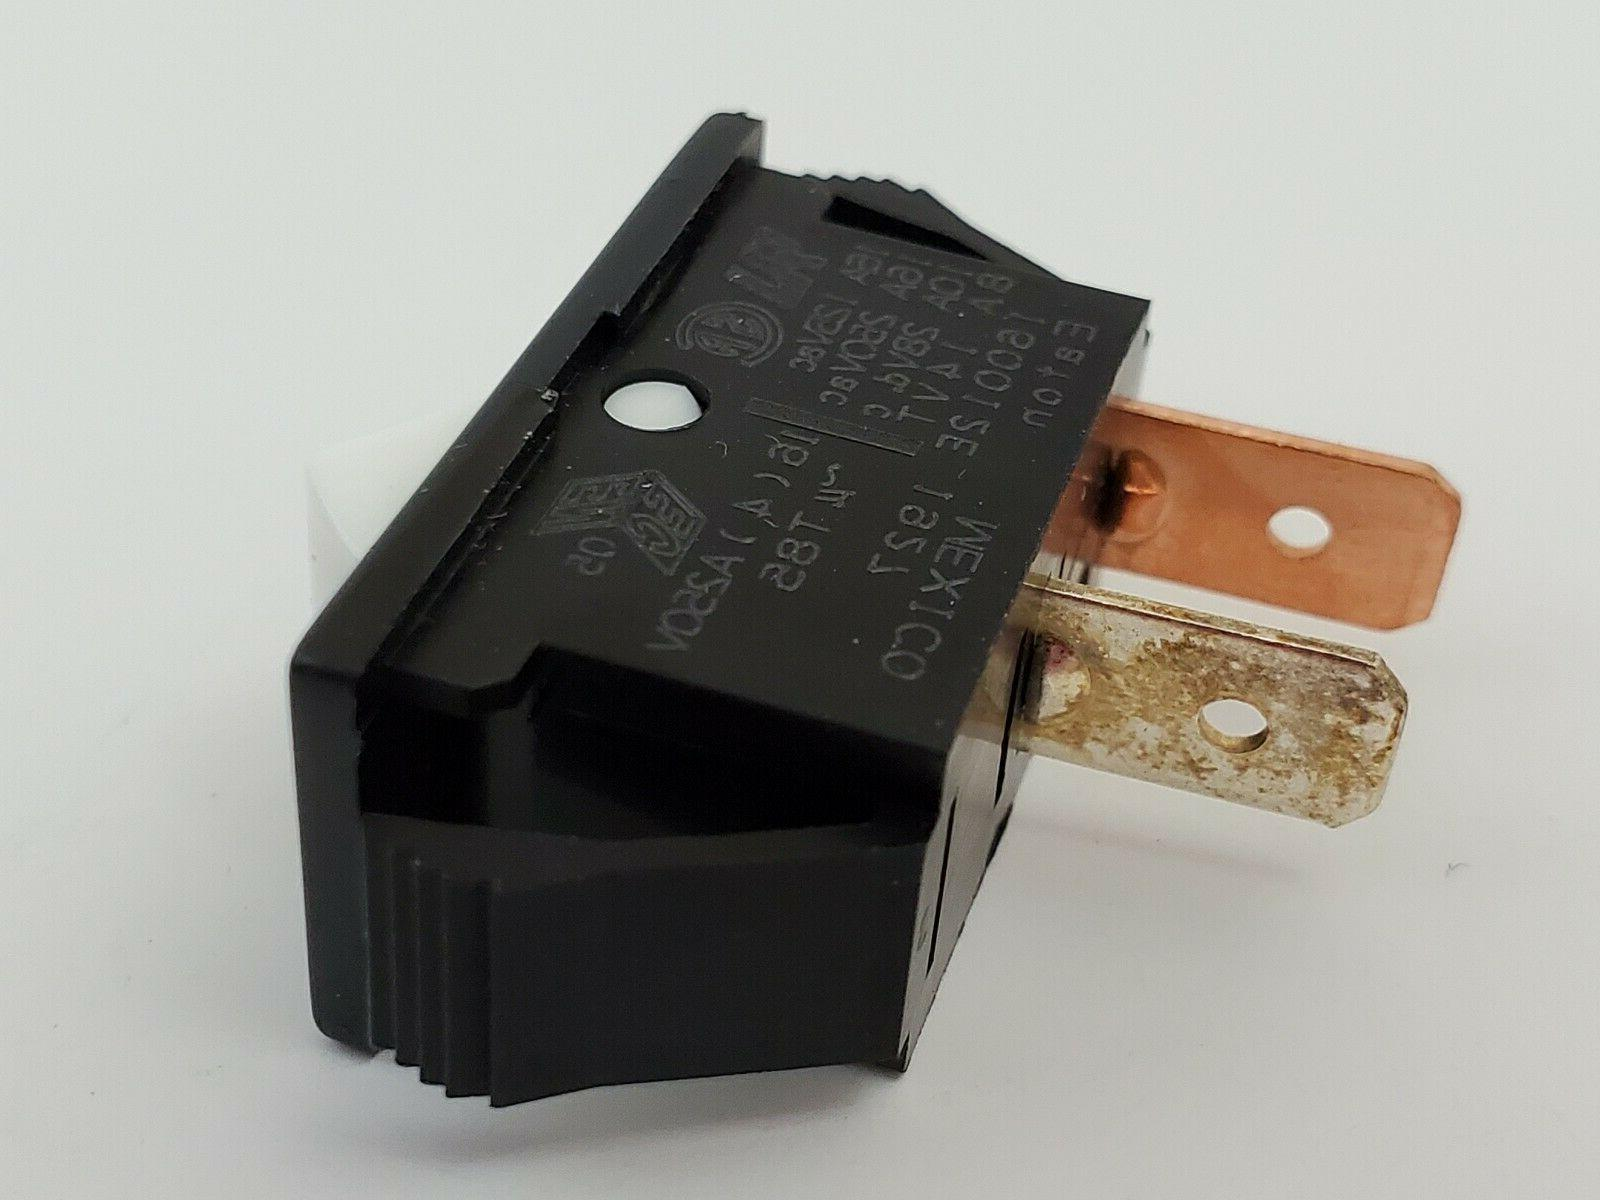 Eaton SPST 2 Position 16A 125V Quick Tabs